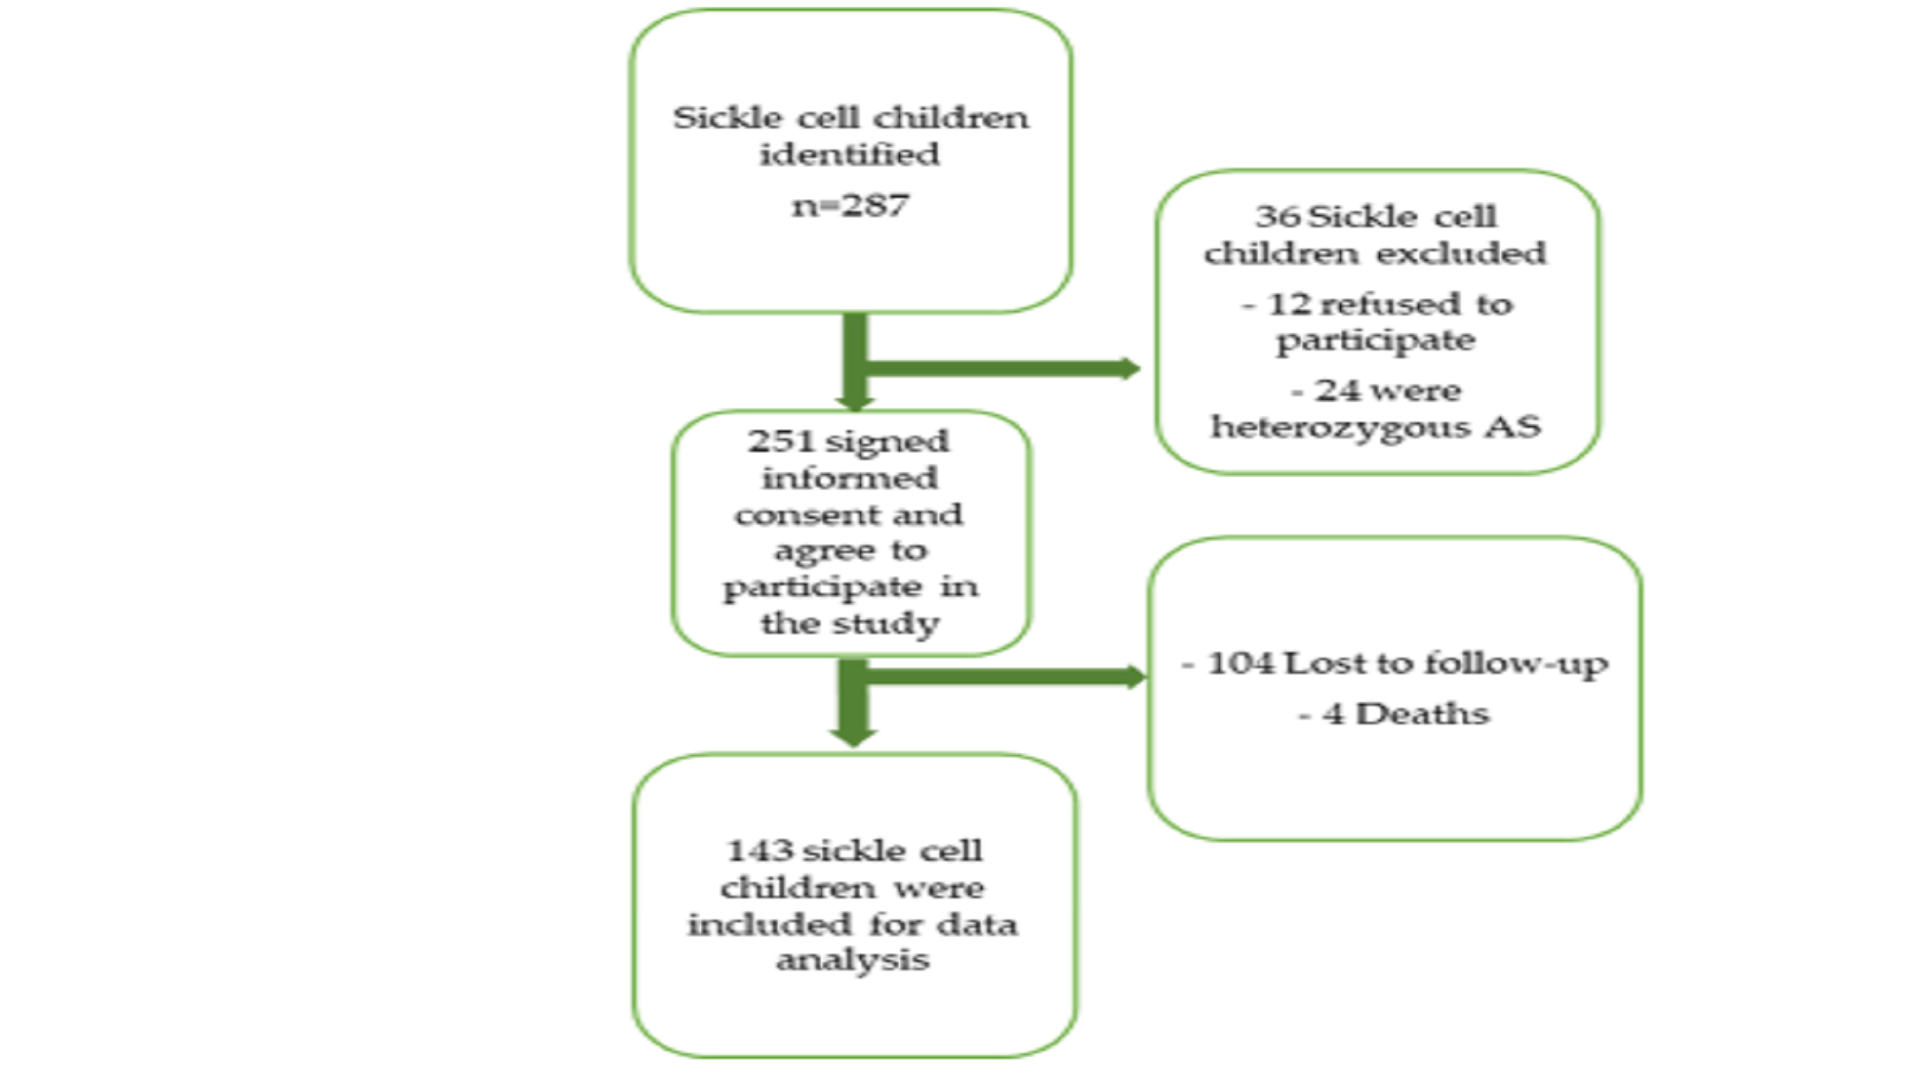 Improvement of Sickle Cell Disease Morbimortality in Children: Experience in a Remote Area of an African Country